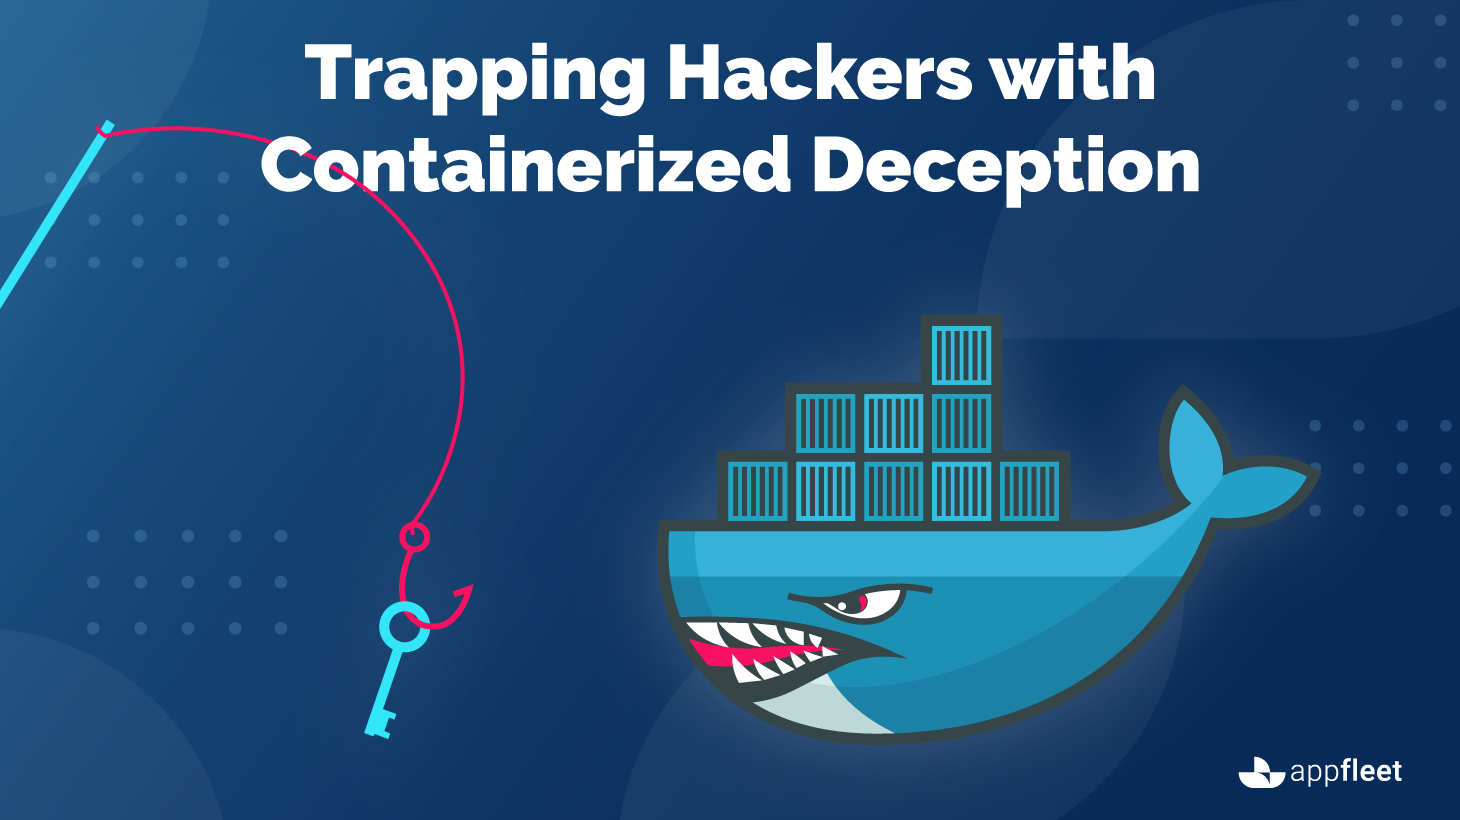 Trapping Hackers with Containerized Deception